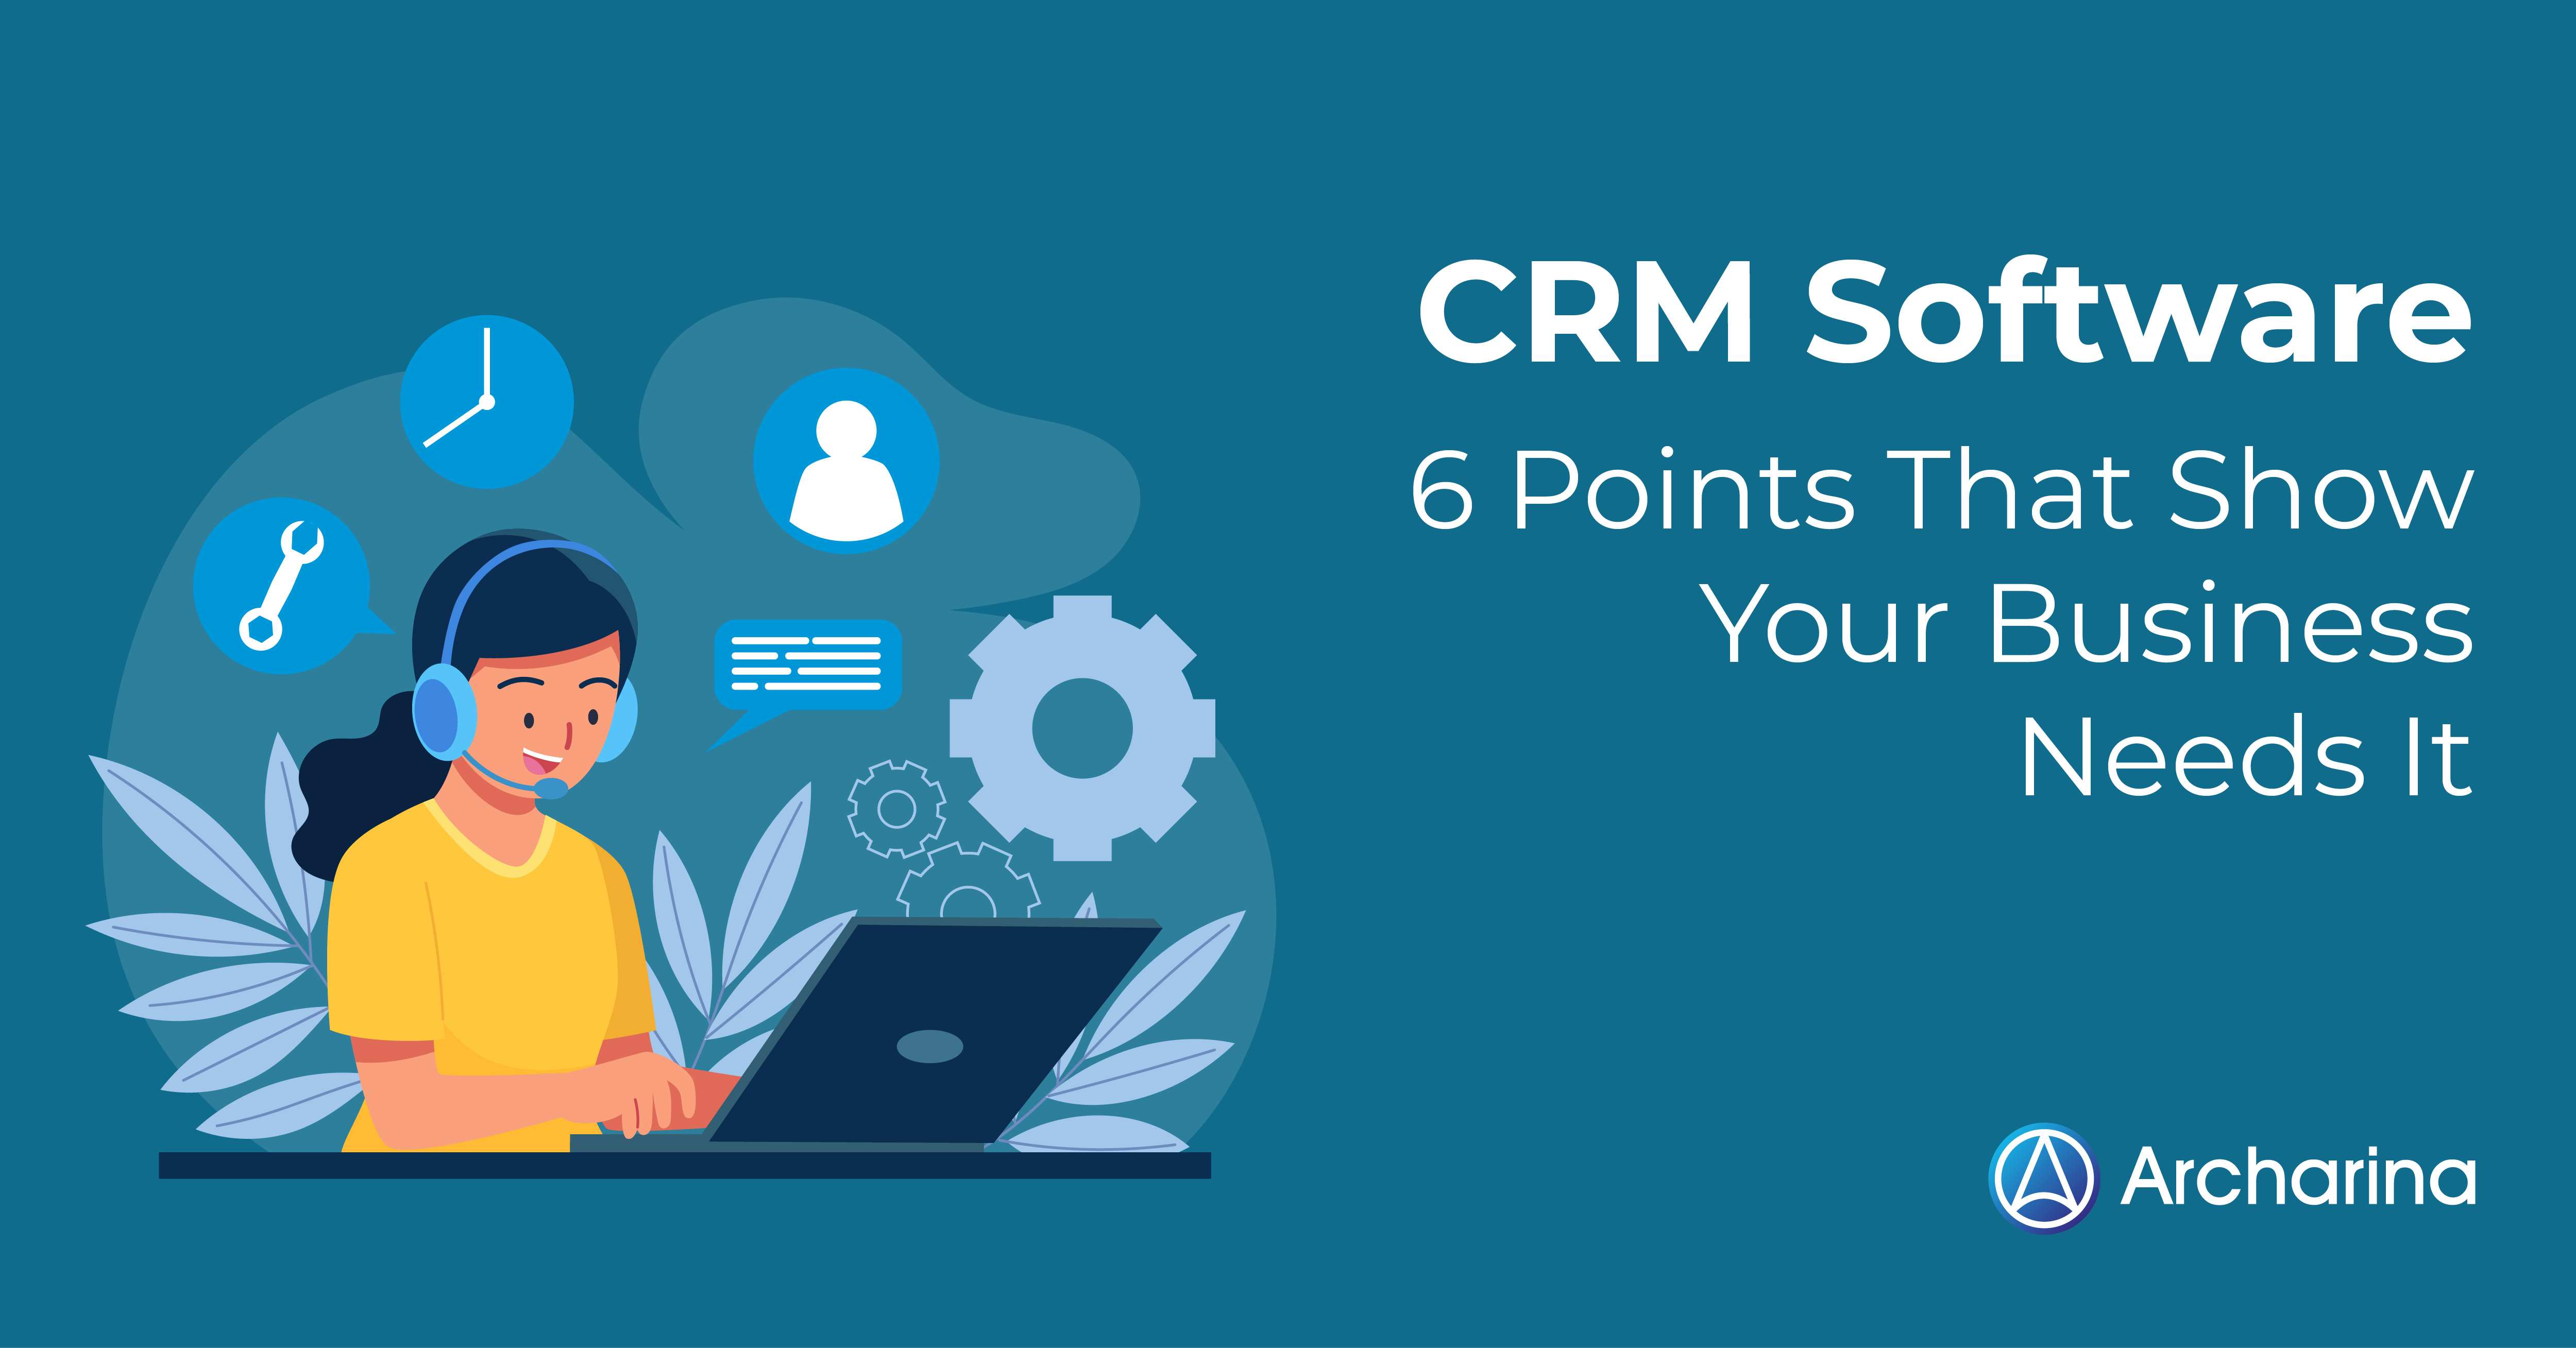 CRM Software: 6 Points That Show Your Business Needs It